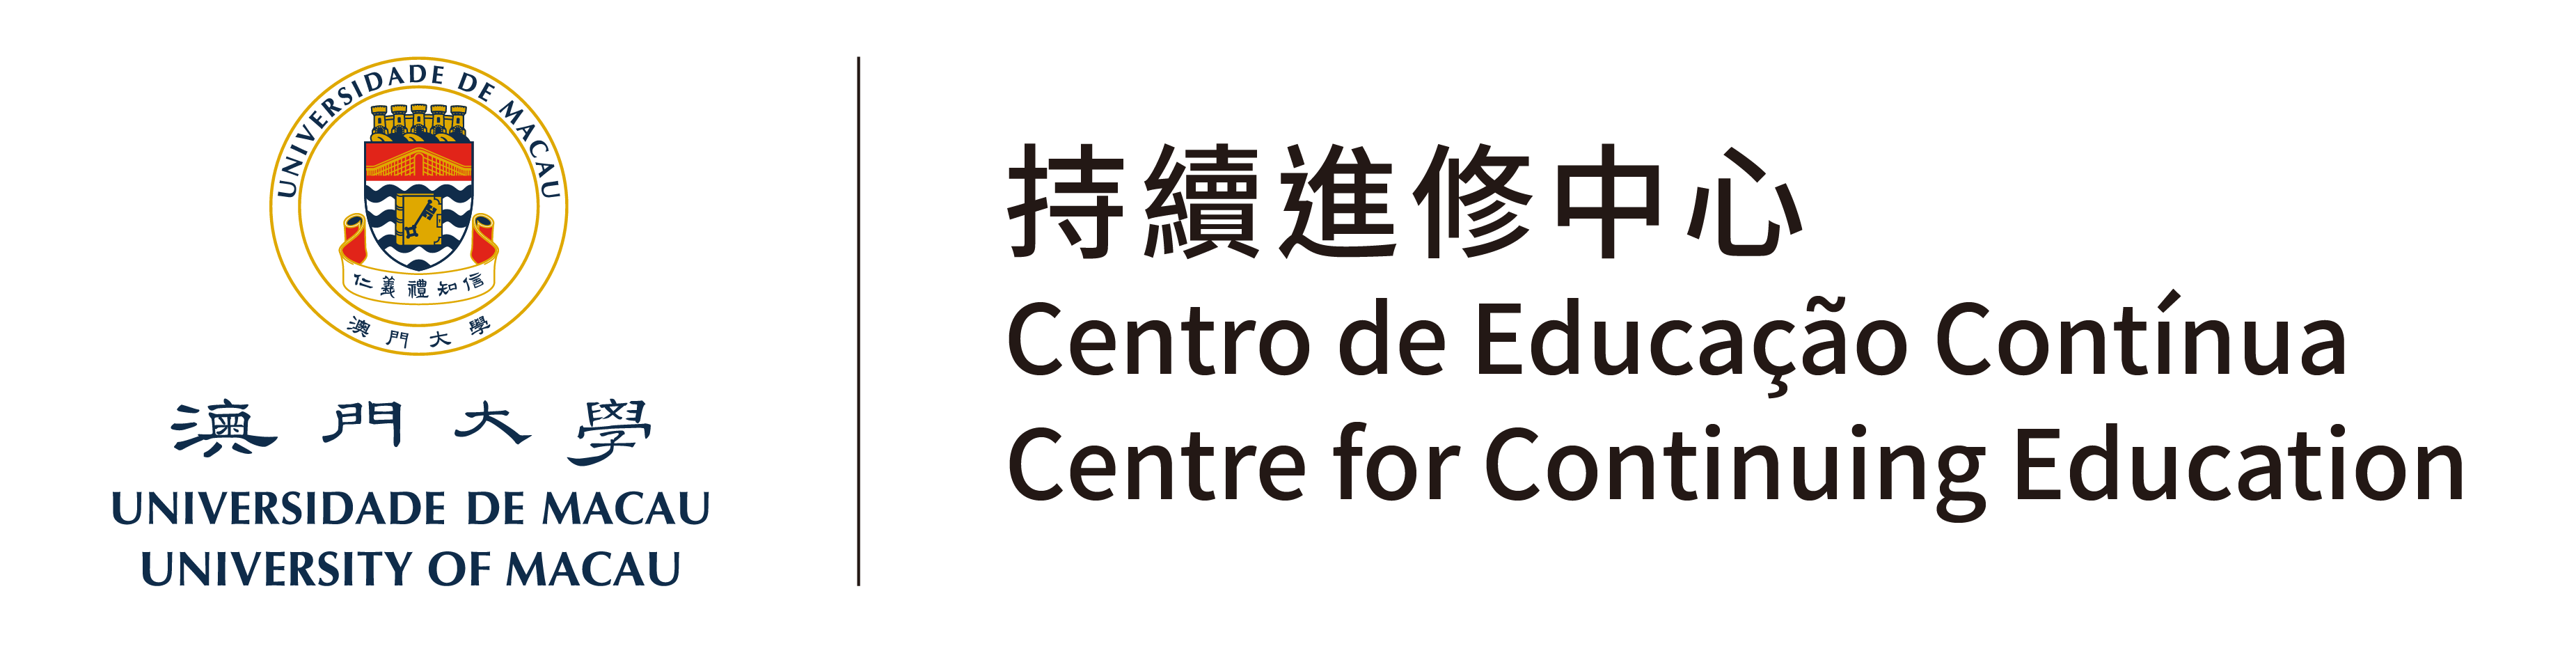 Centre for Continuing Education (CCE) – University of Macau Logo